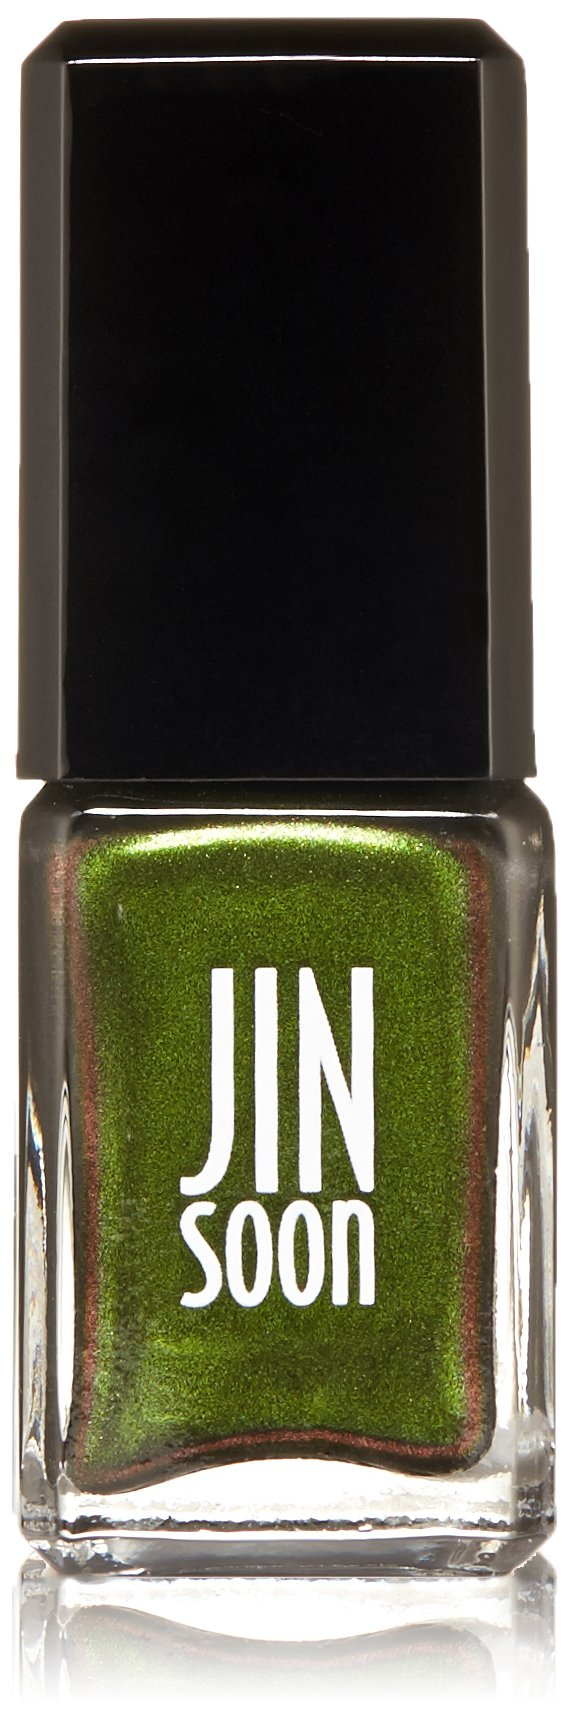 Amazon.com: JINsoon Nail Lacquer, Obsidian: Luxury Beauty